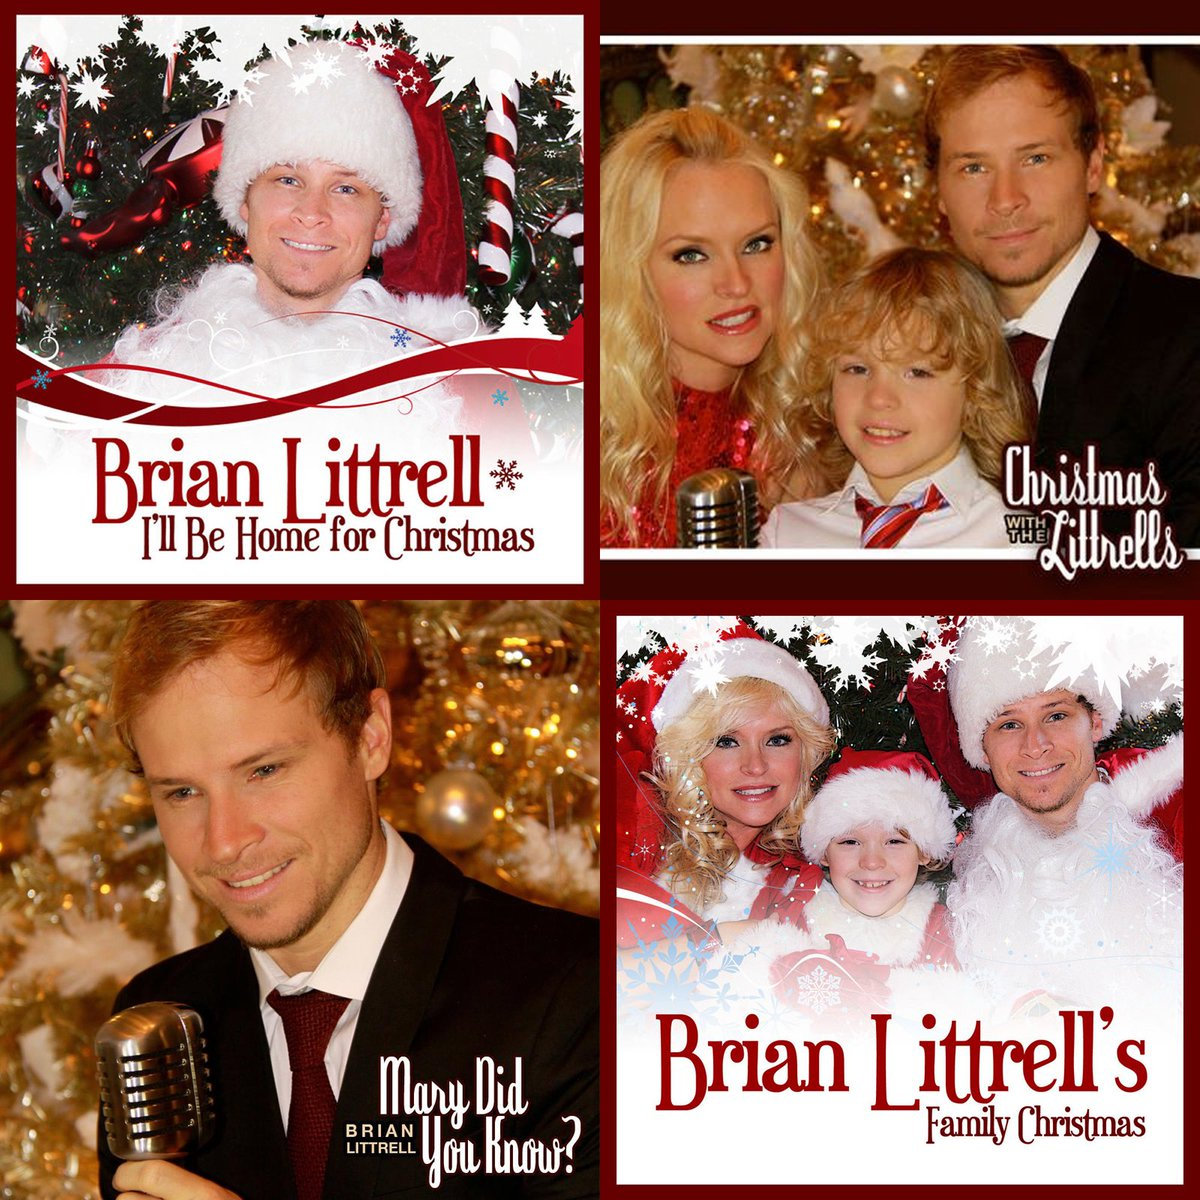 Get in the holiday spirit w/ the Littrell Family Christmas music! Download on iTunes here: https://t.co/rRKFDWQMxT https://t.co/a9JIKywlyk